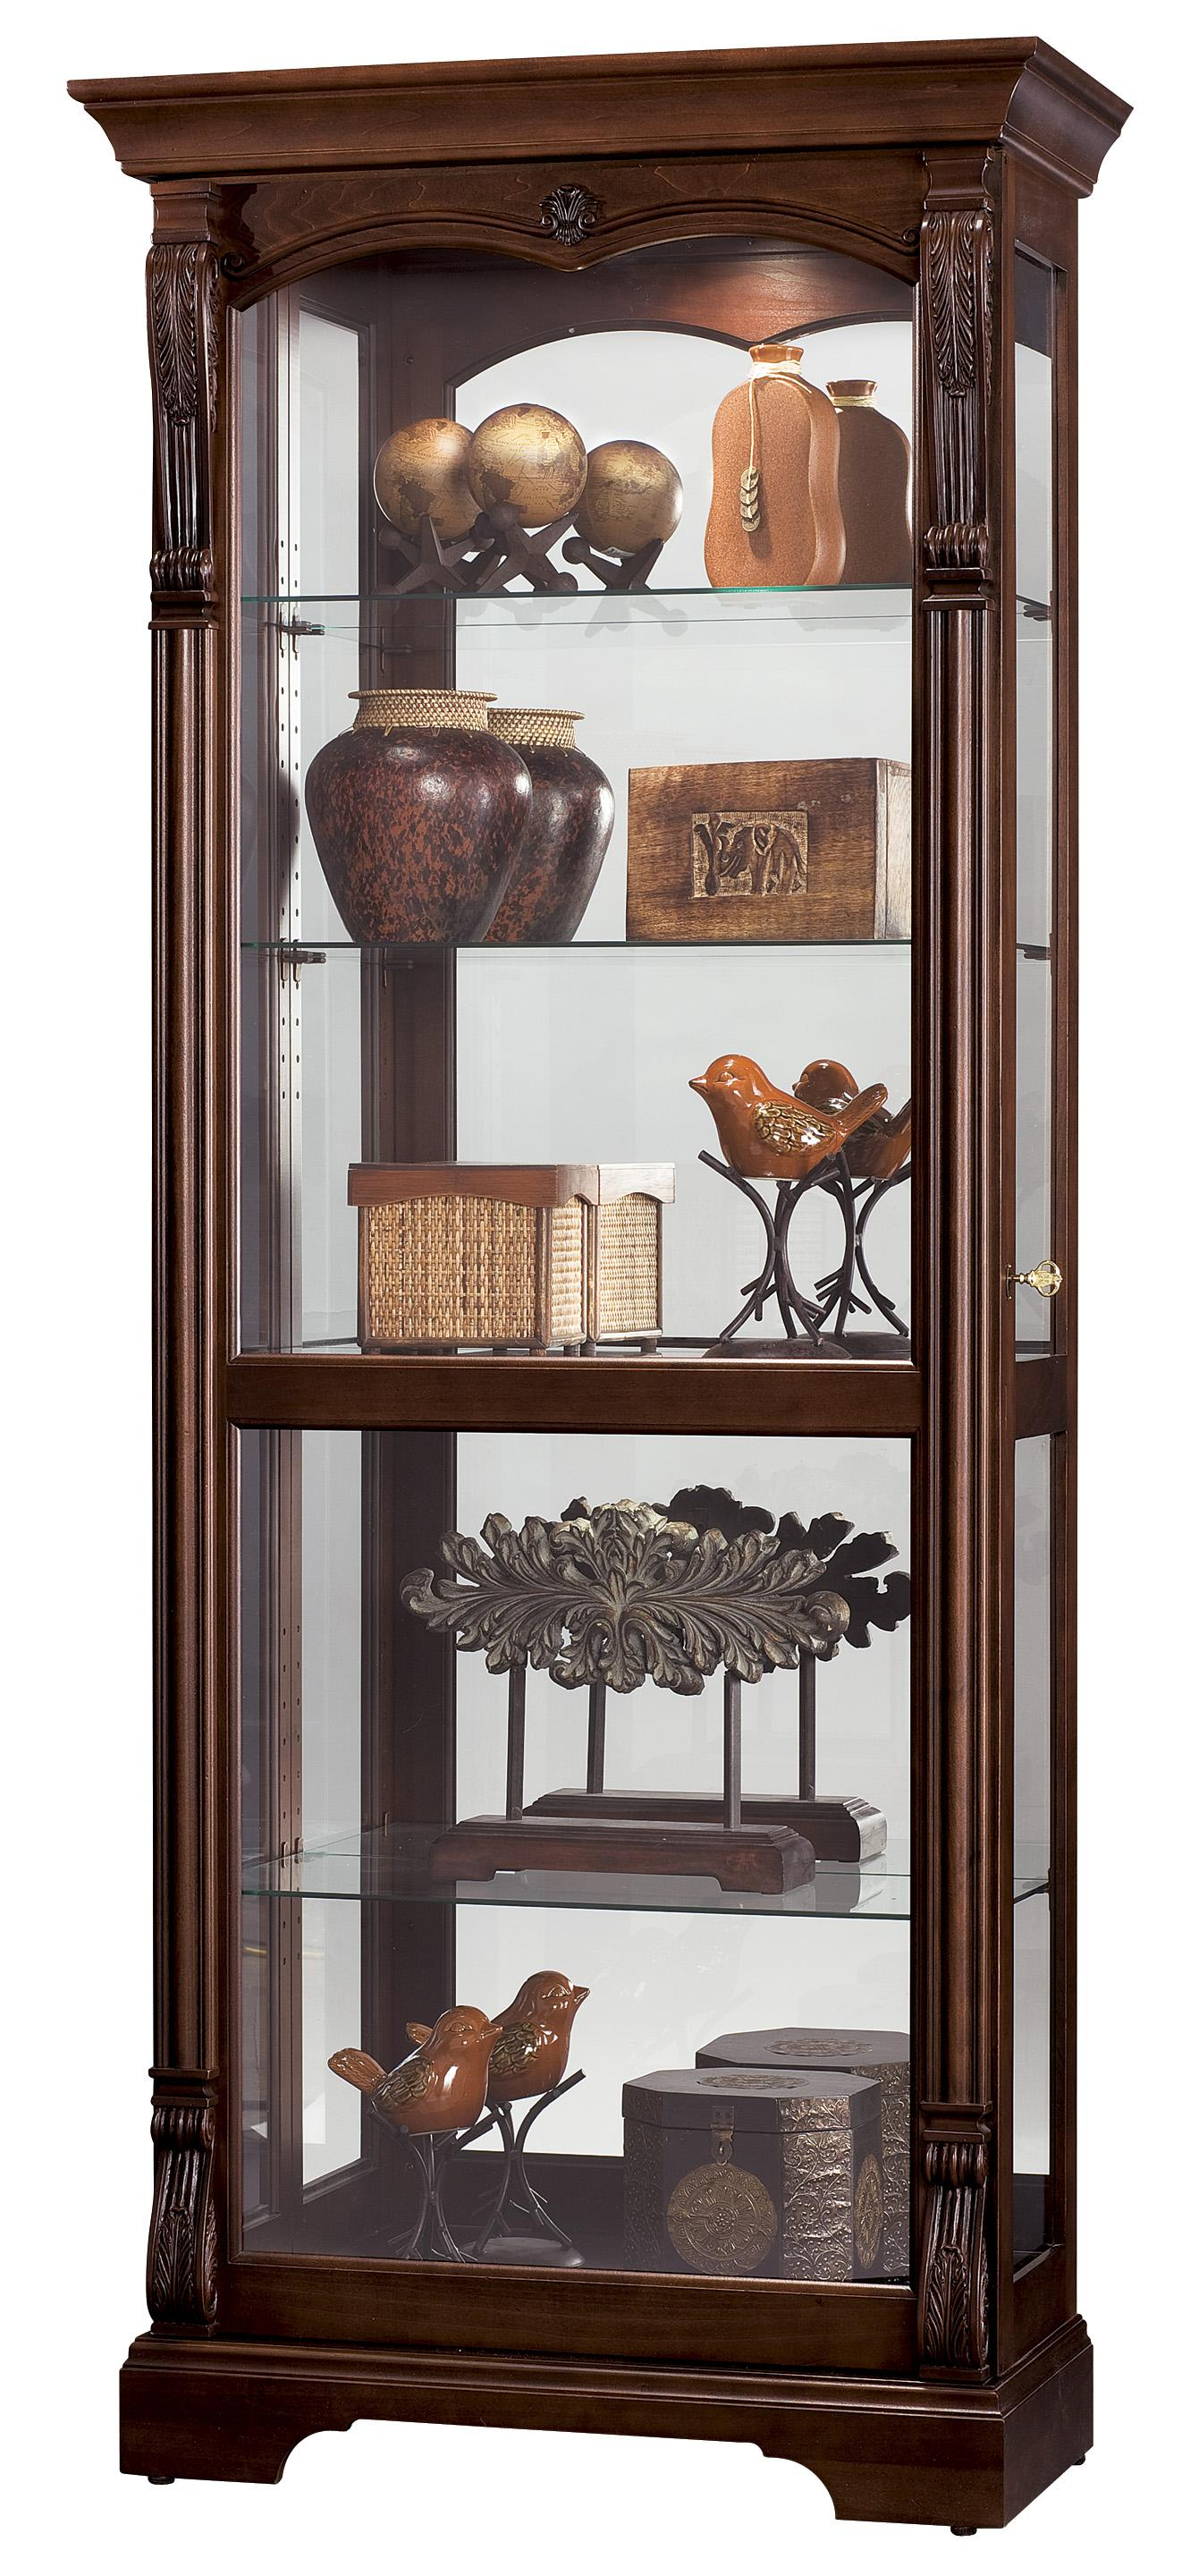 Howard Miller Furniture Trend Designs Curios Bernadette Display Cabinet - Item Number: 680-501